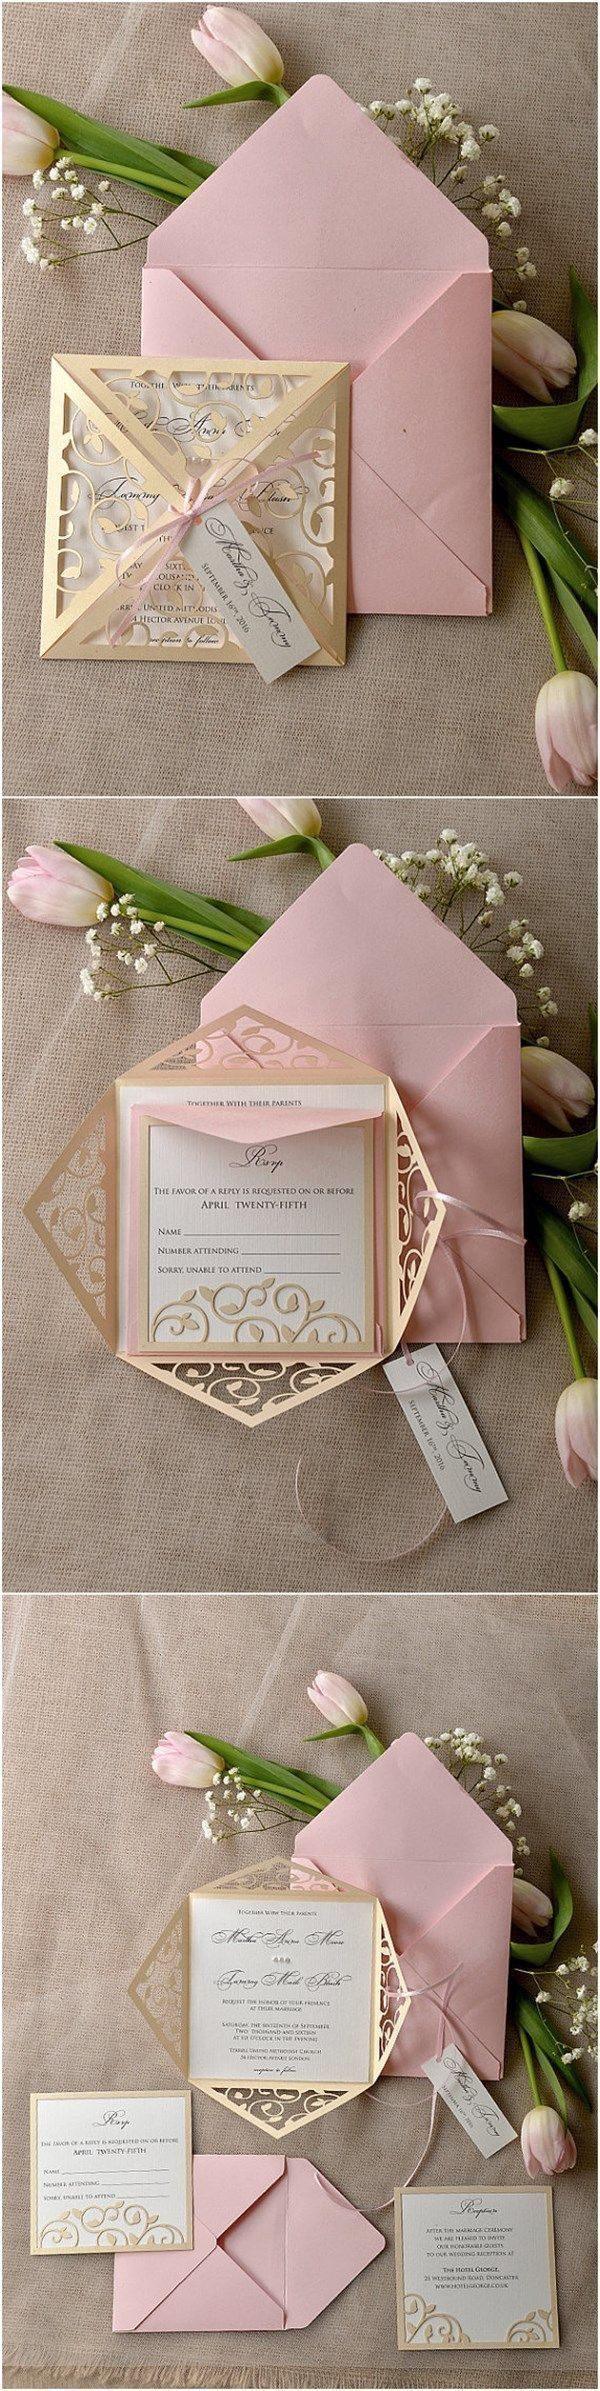 laser cut wedding invites canada%0A Vintage Patel Pink Blush Gold Laser Cut Wedding Invitation  Deer Pearl  Flowers Rose gold and champagne themed wedding